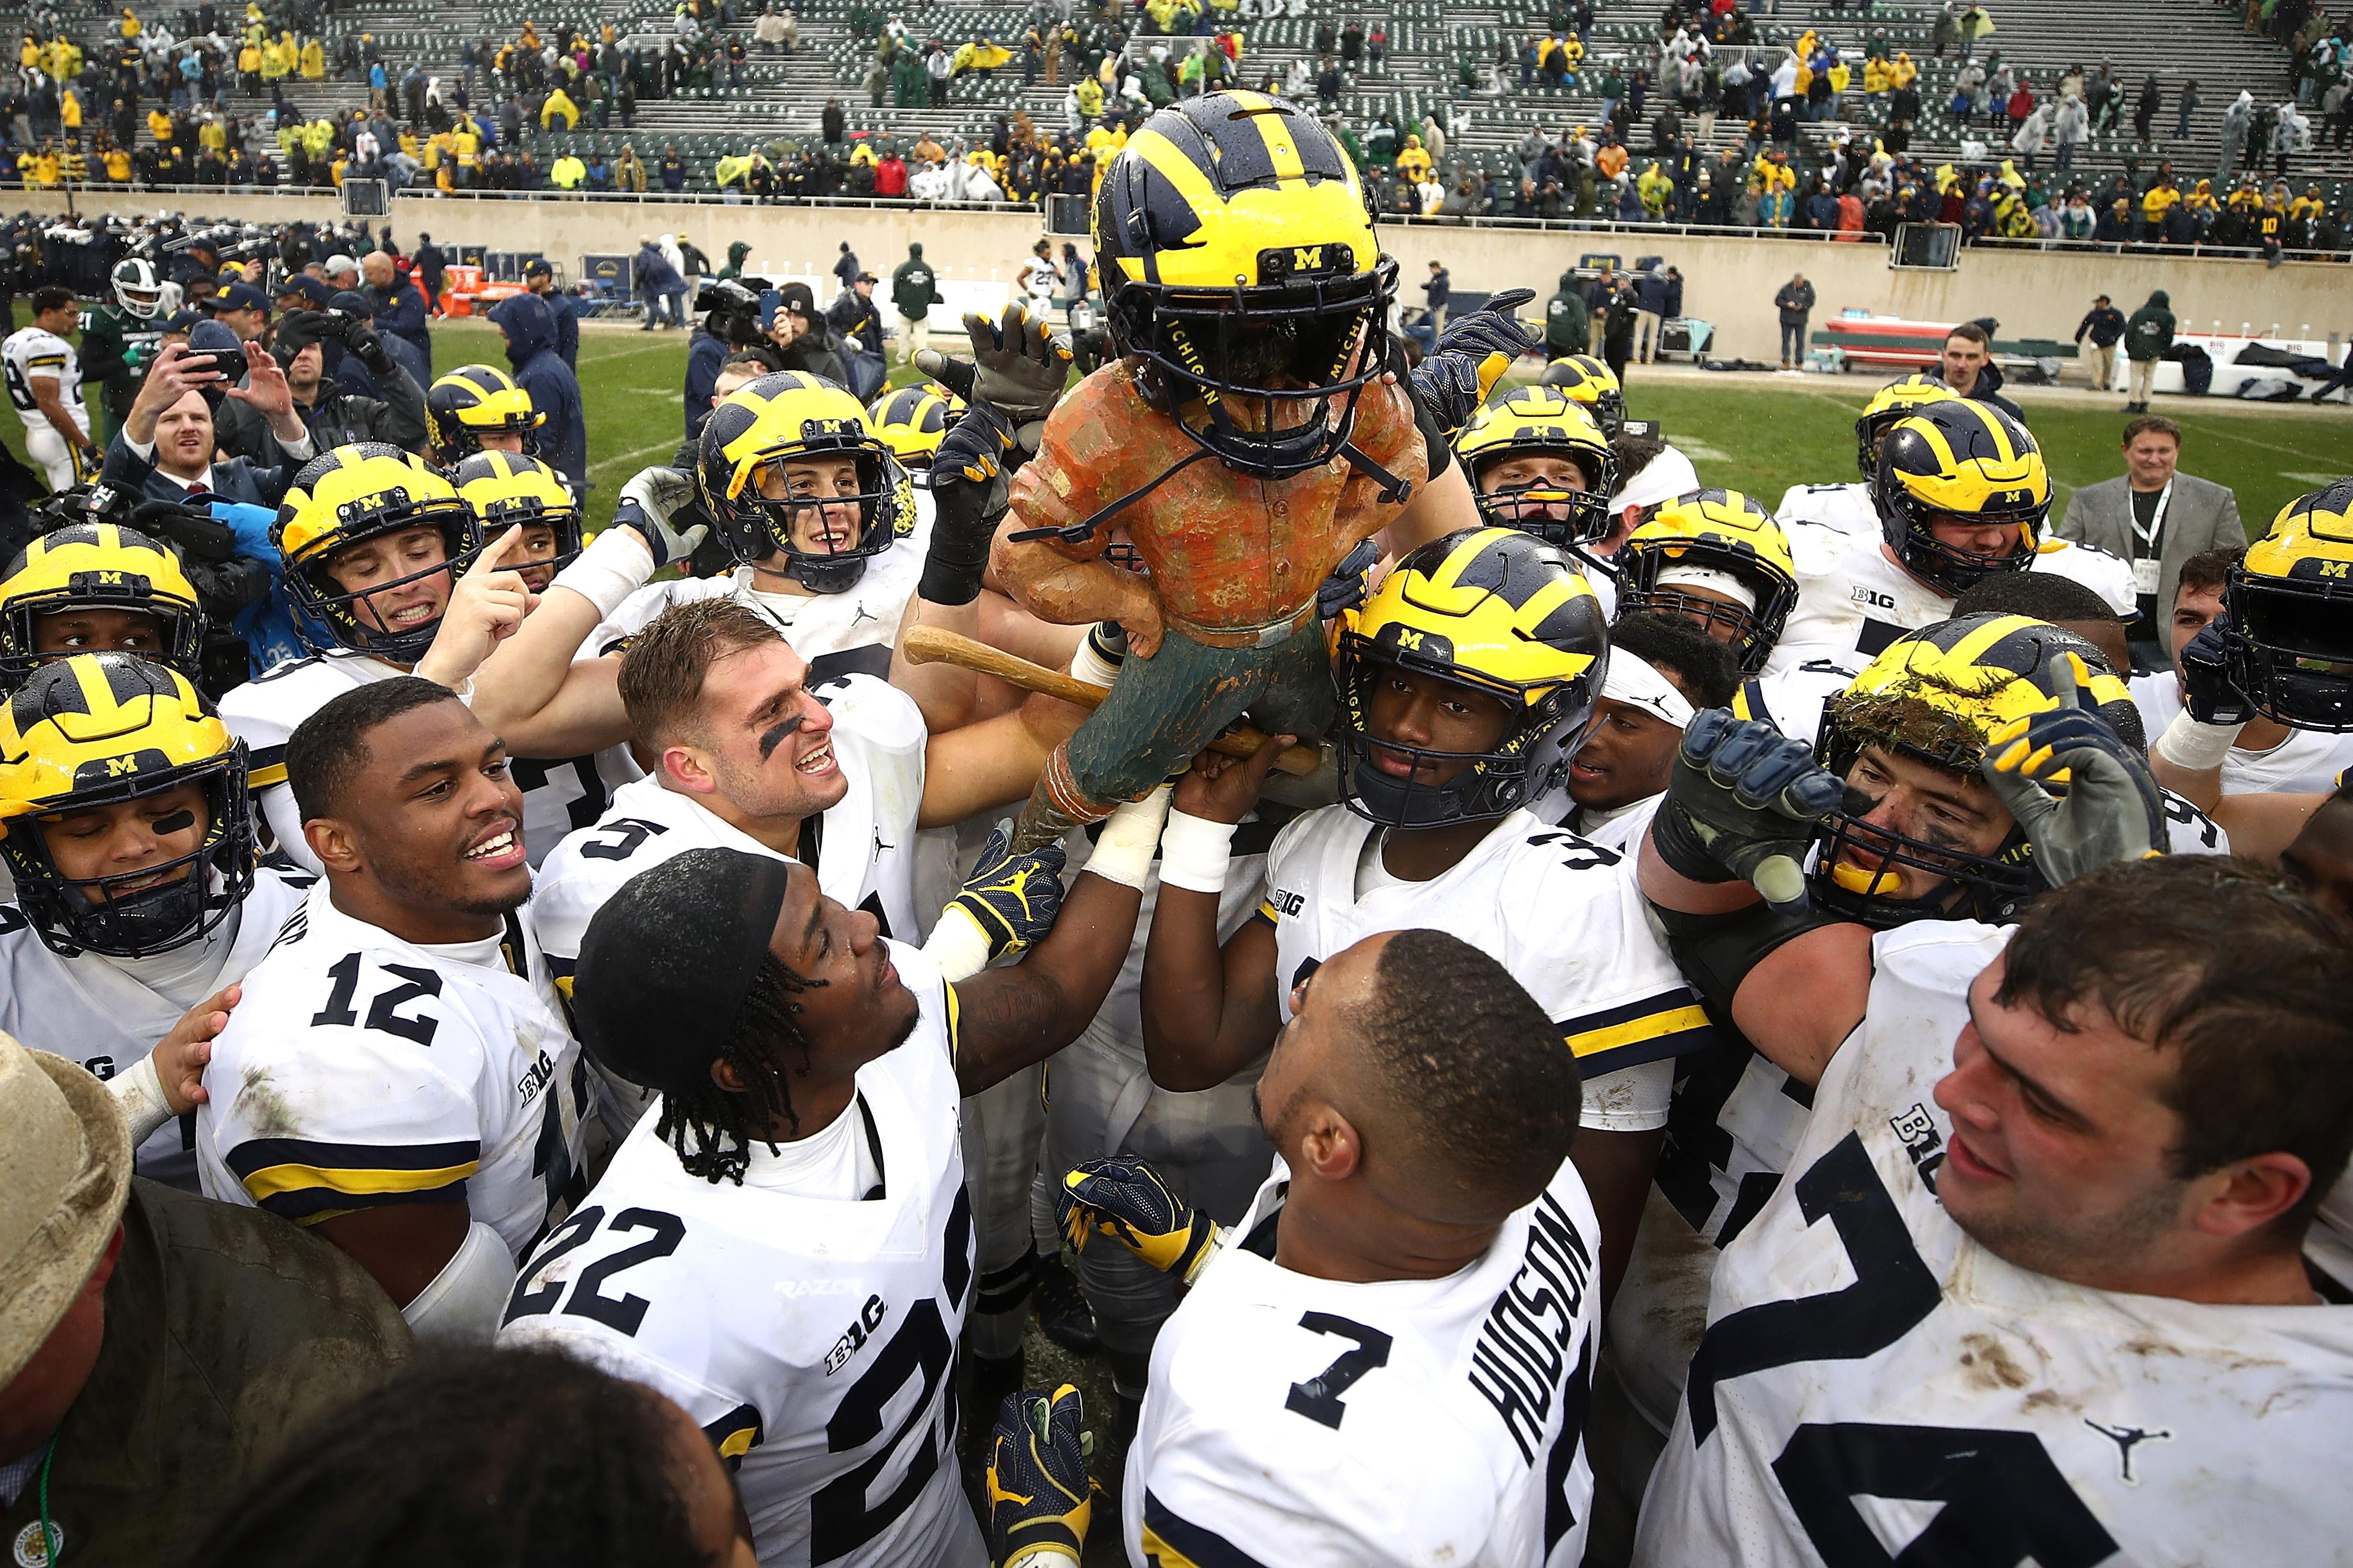 EAST LANSING, MI - OCTOBER 20:  The Michigan Wolverines celebrate winning the Paul Bunyan trophy with a 21-7 win over the Michigan State Spartans at Spartan Stadium on October 20, 2018 in East Lansing, Michigan. (Photo by Gregory Shamus/Getty Images)